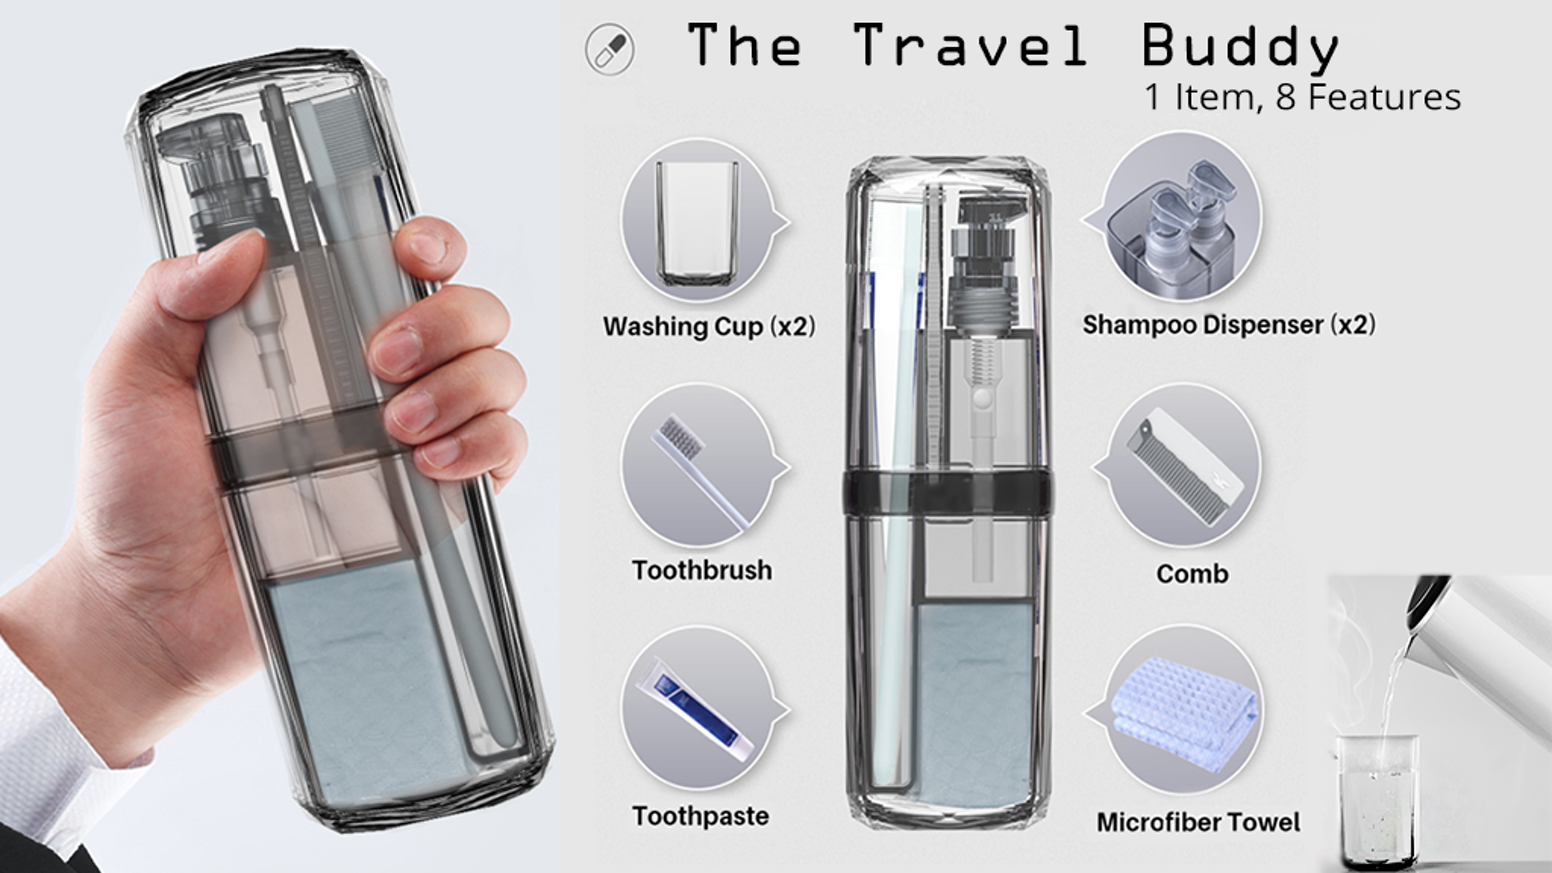 Sleek & compact all-in-one travel toiletries companion. Stay Fresh On The Go